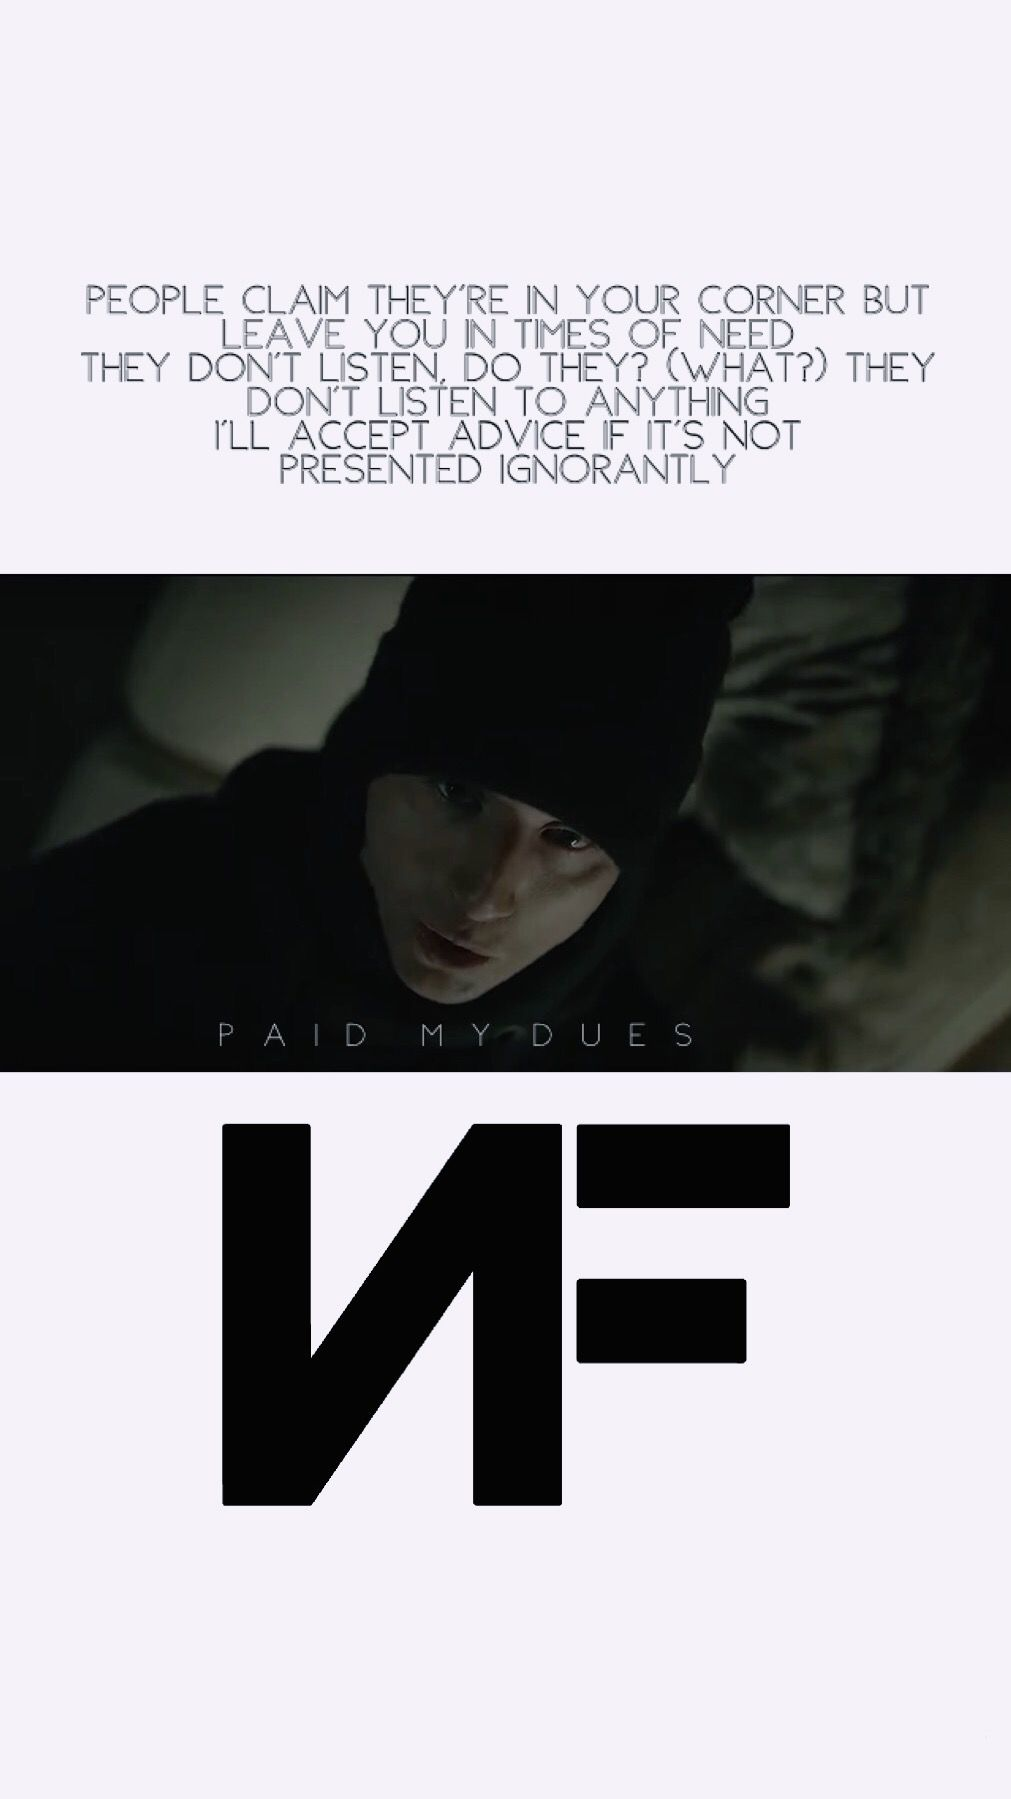 Made A Paid My Dues Nf Wallpaper Nf Quotes Nf Lyrics Nf Real Music